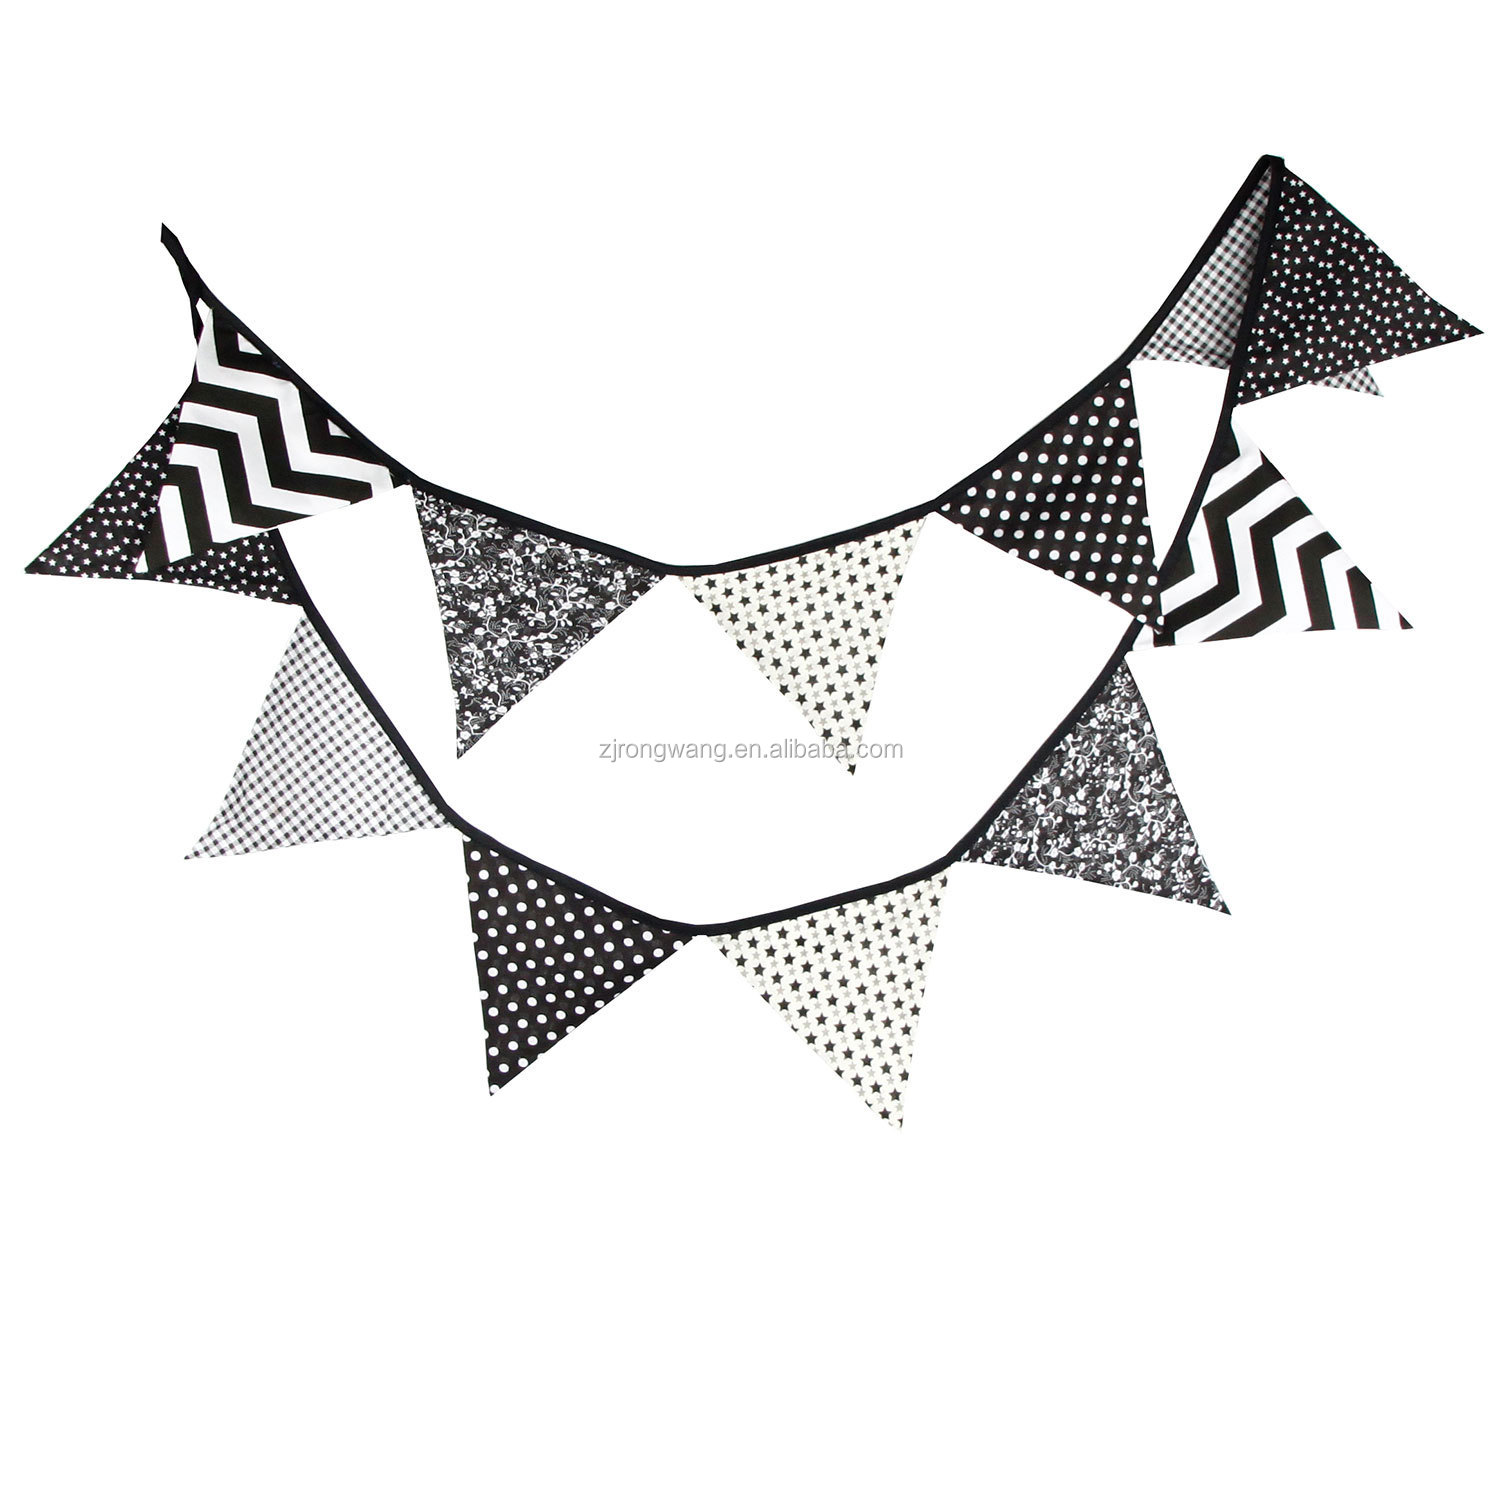 2019 New design black and white cotton triangle string flag tent flag for home decoration